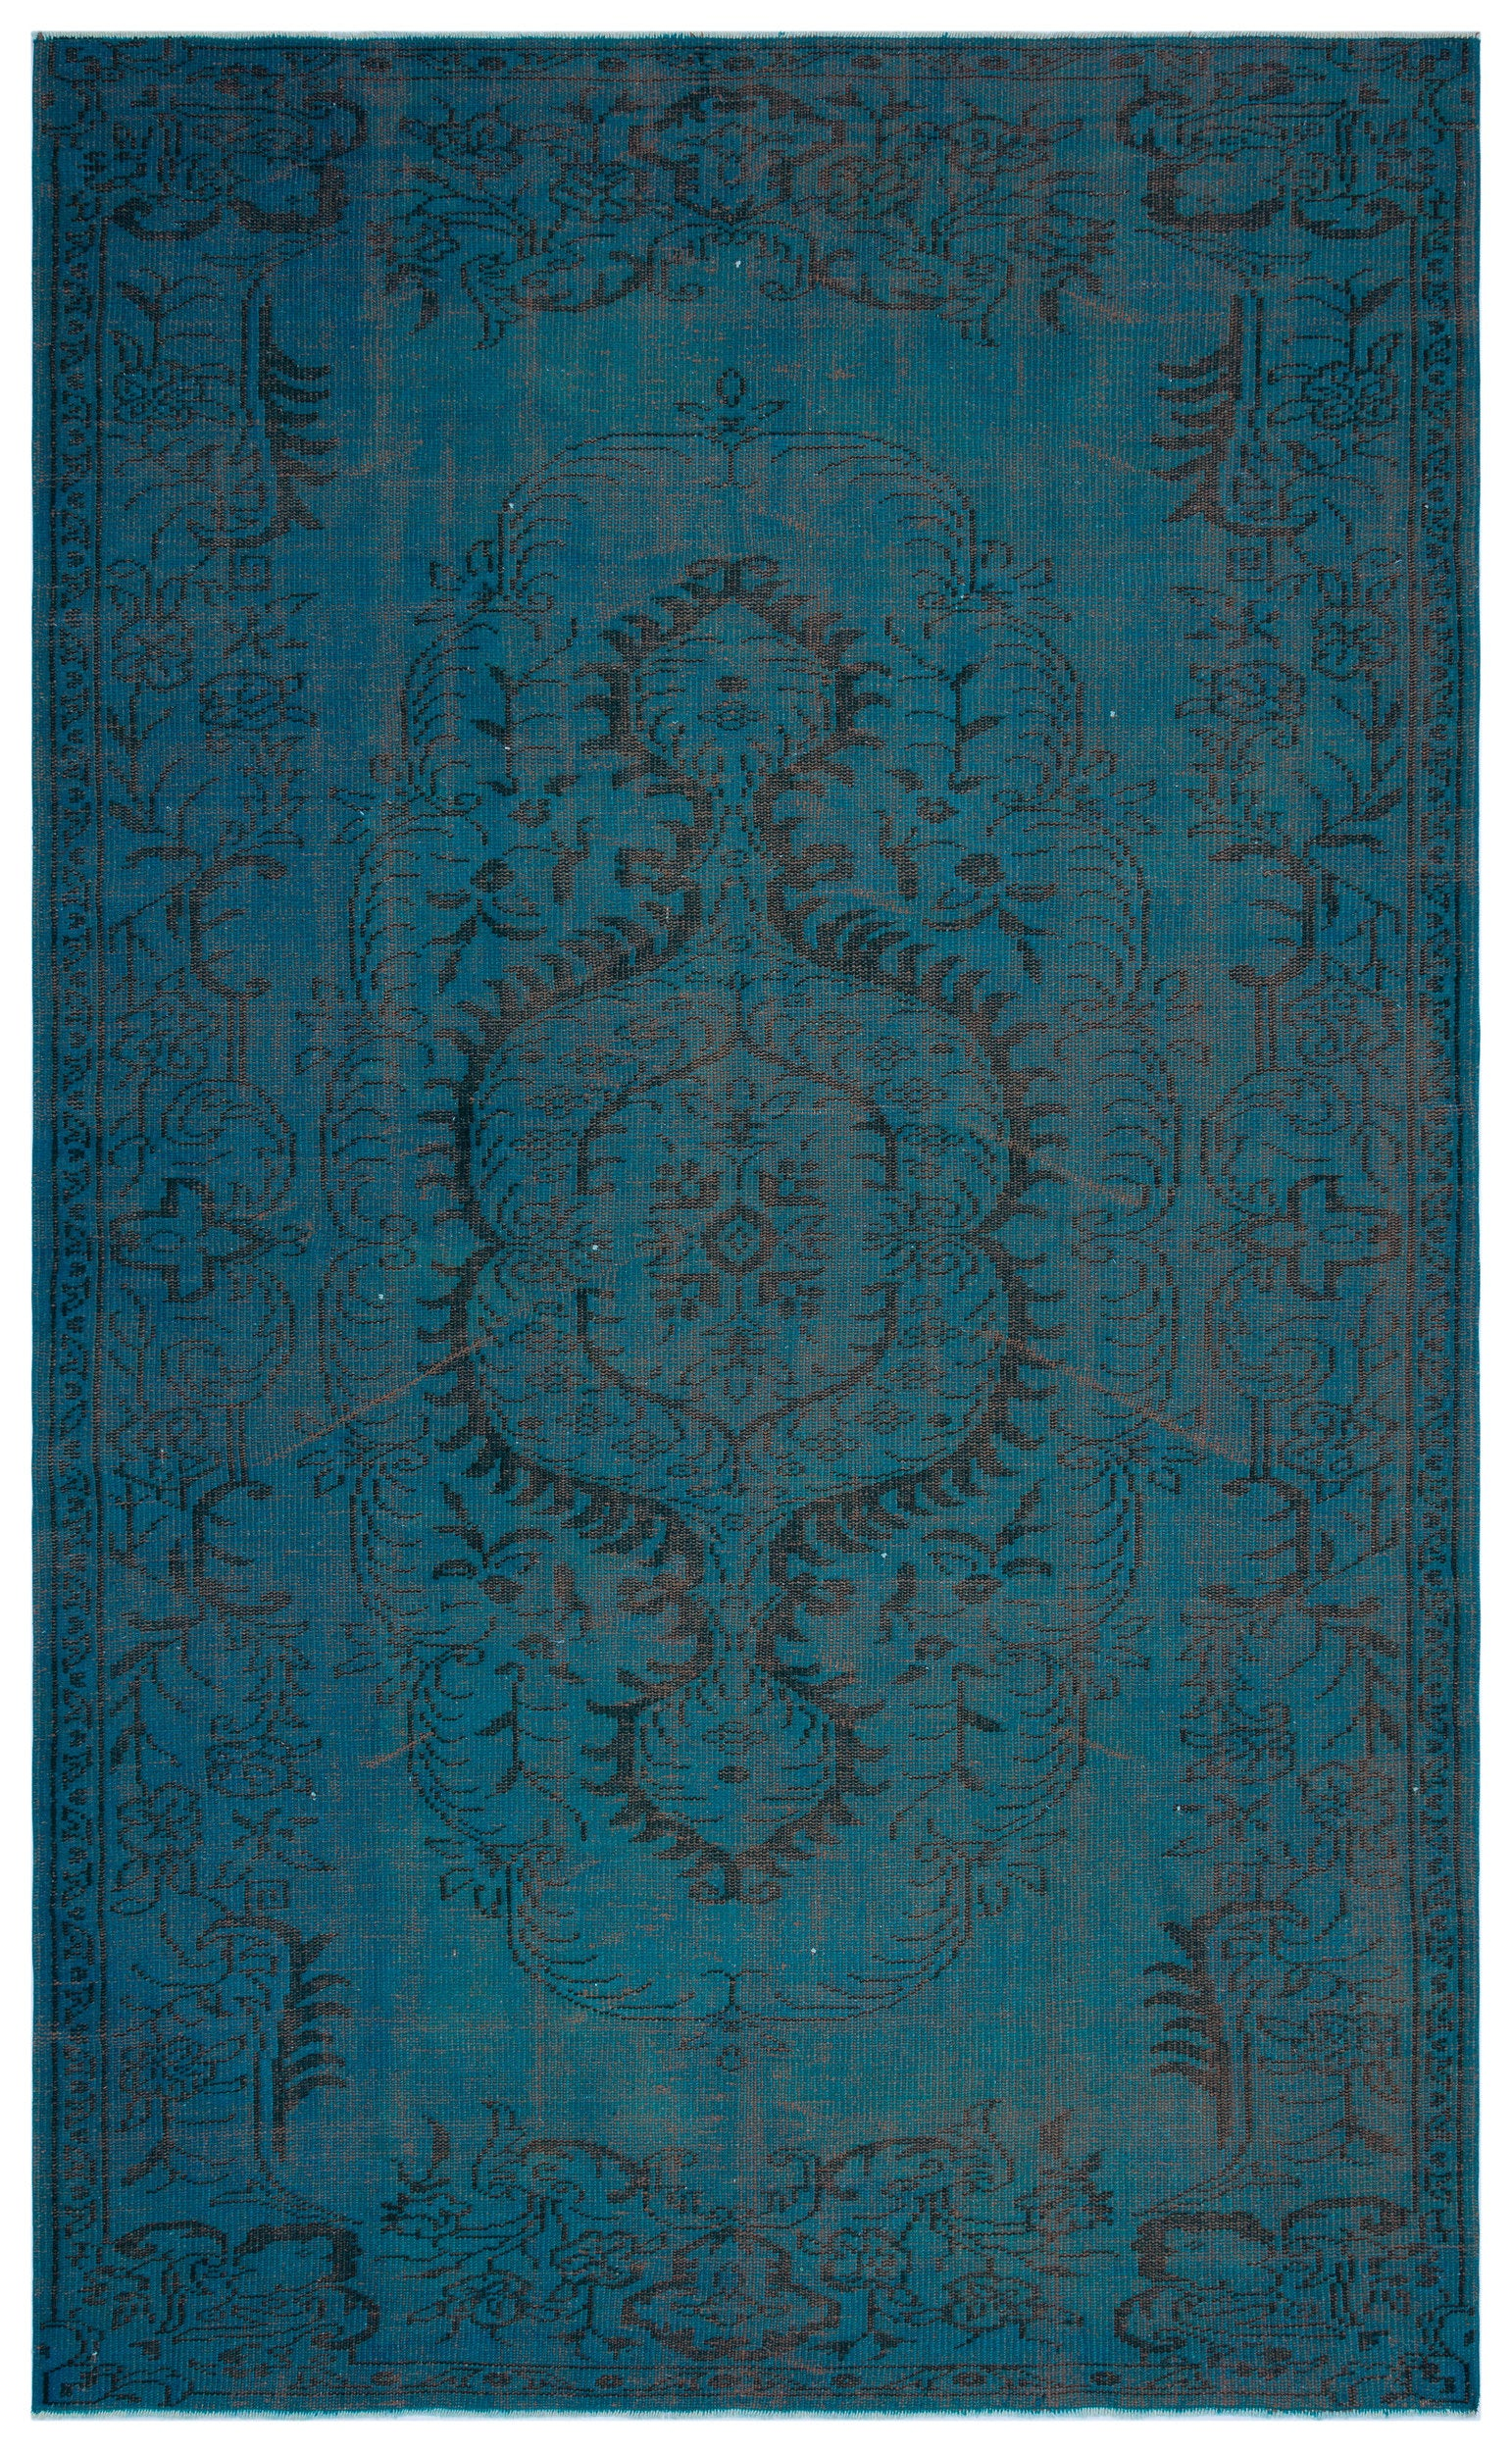 Turquoise  Over Dyed Vintage Rug 6'1'' x 9'9'' ft 185 x 298 cm